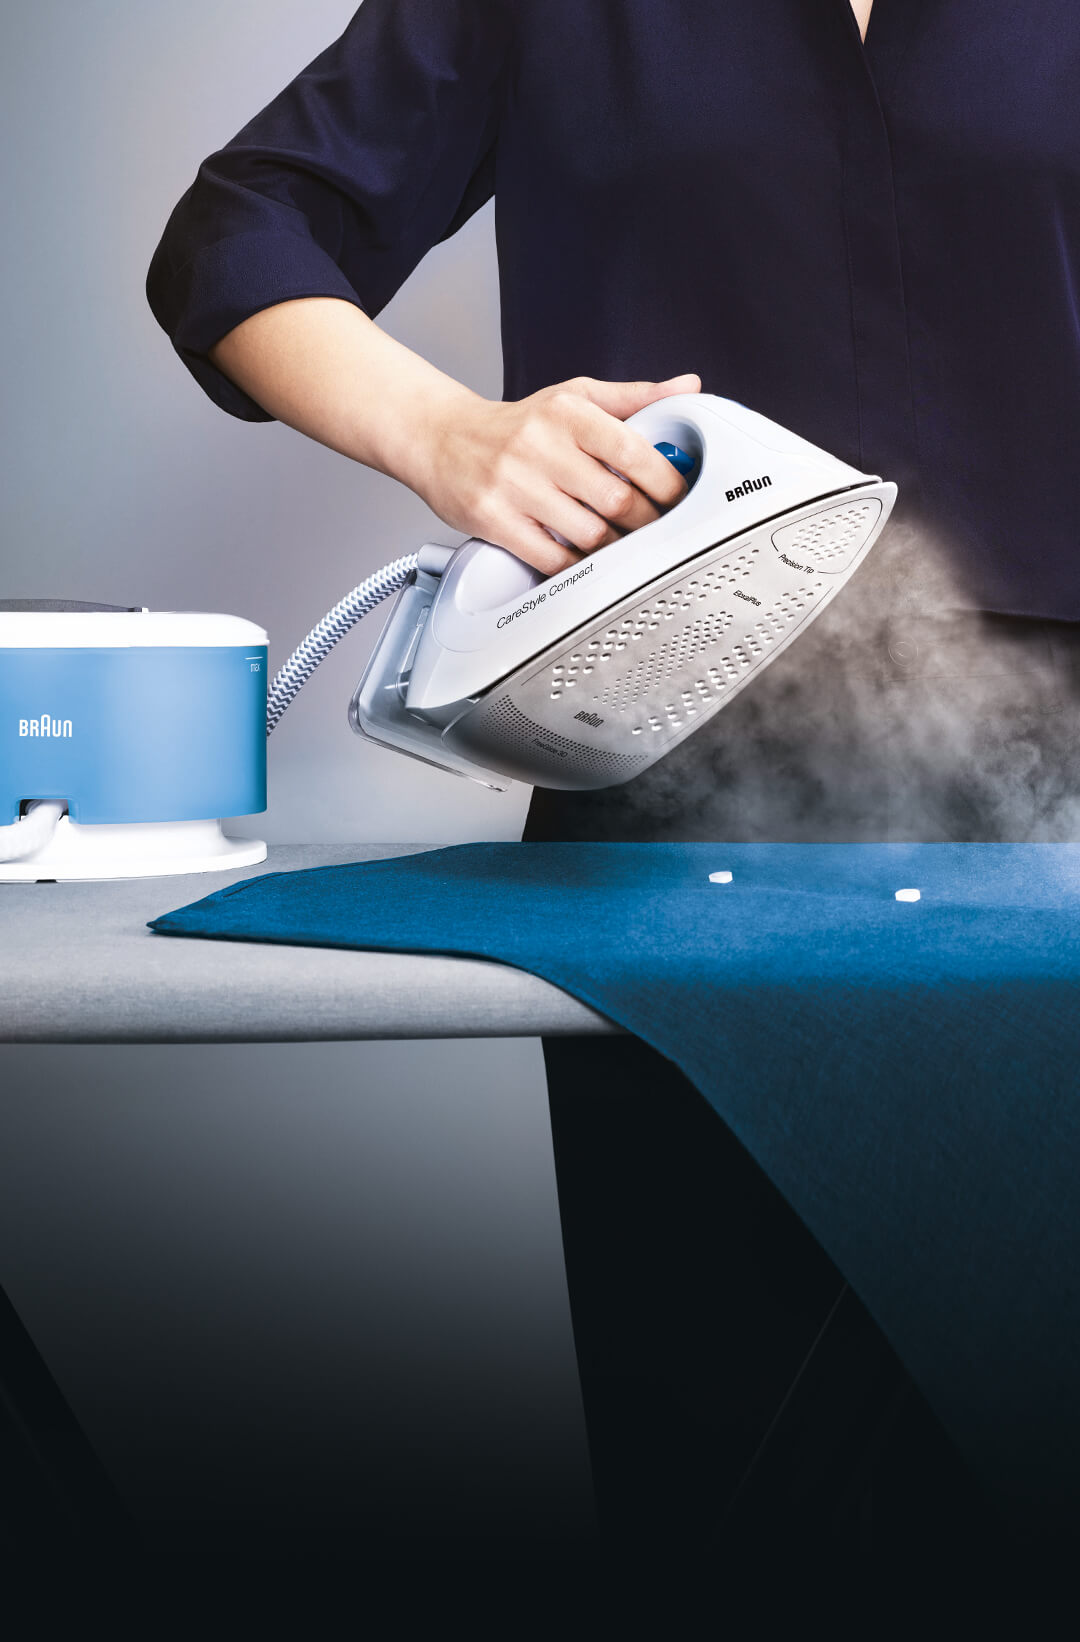 Braun CareStyle Compact steam generator iron